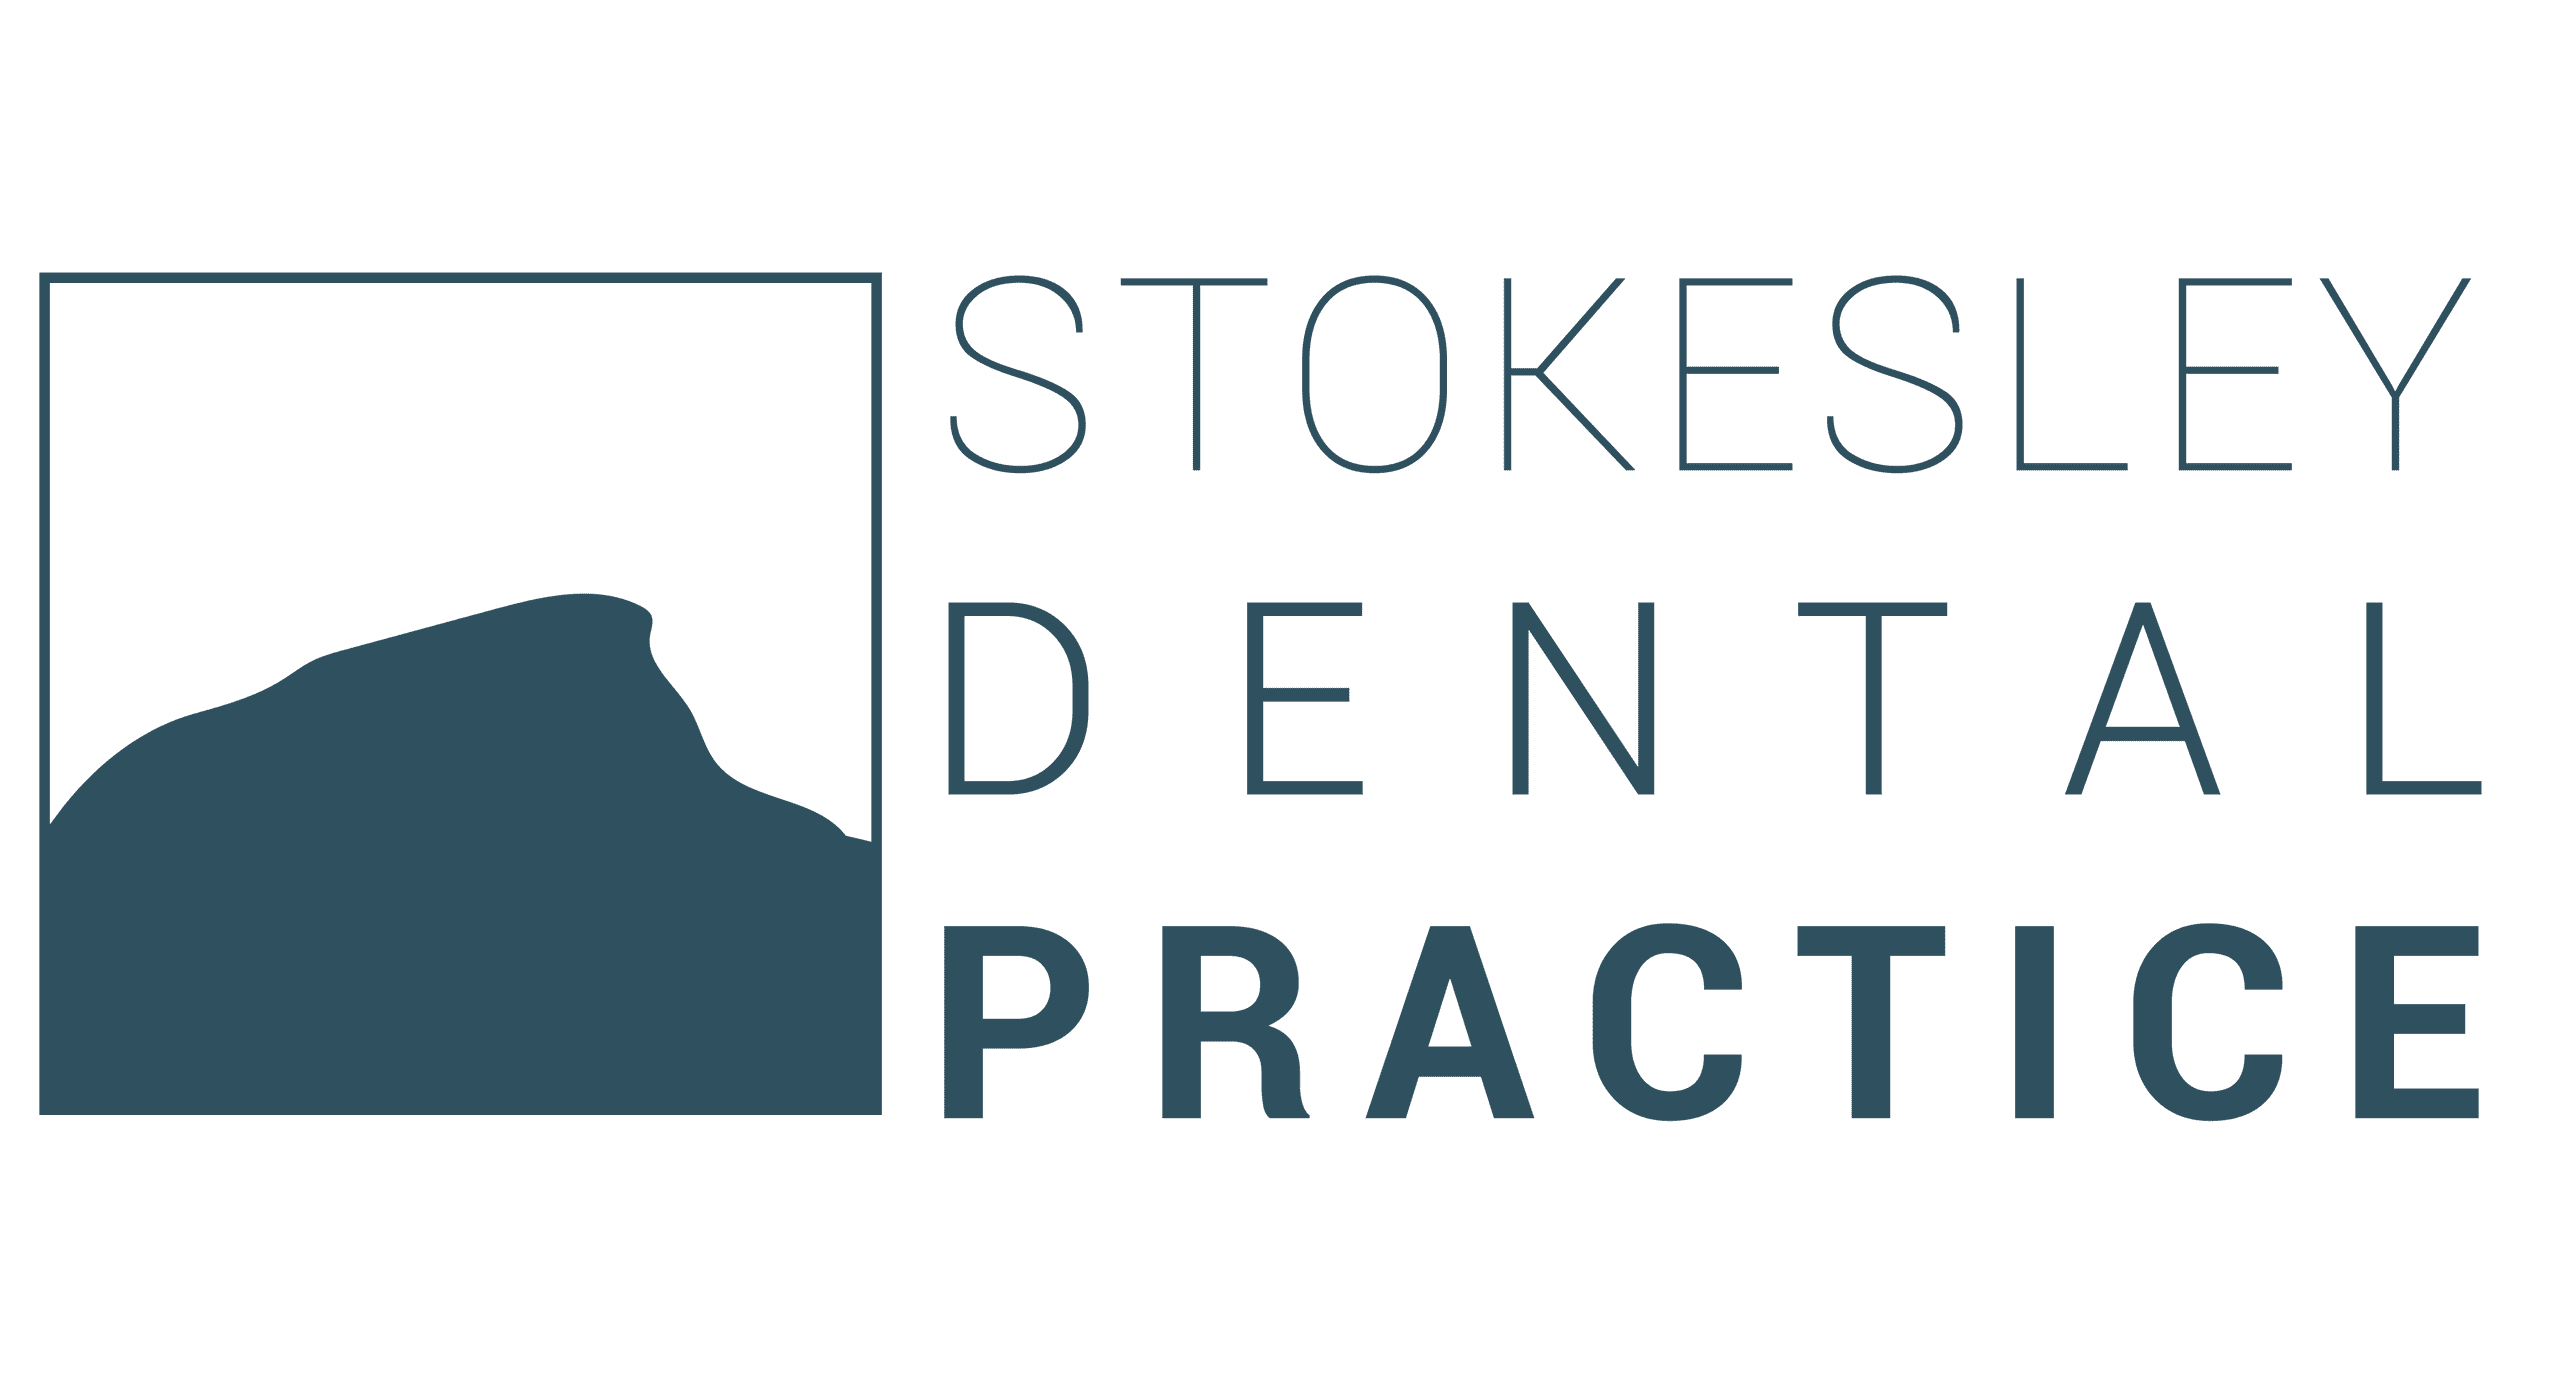 Stokesley Dental Practice